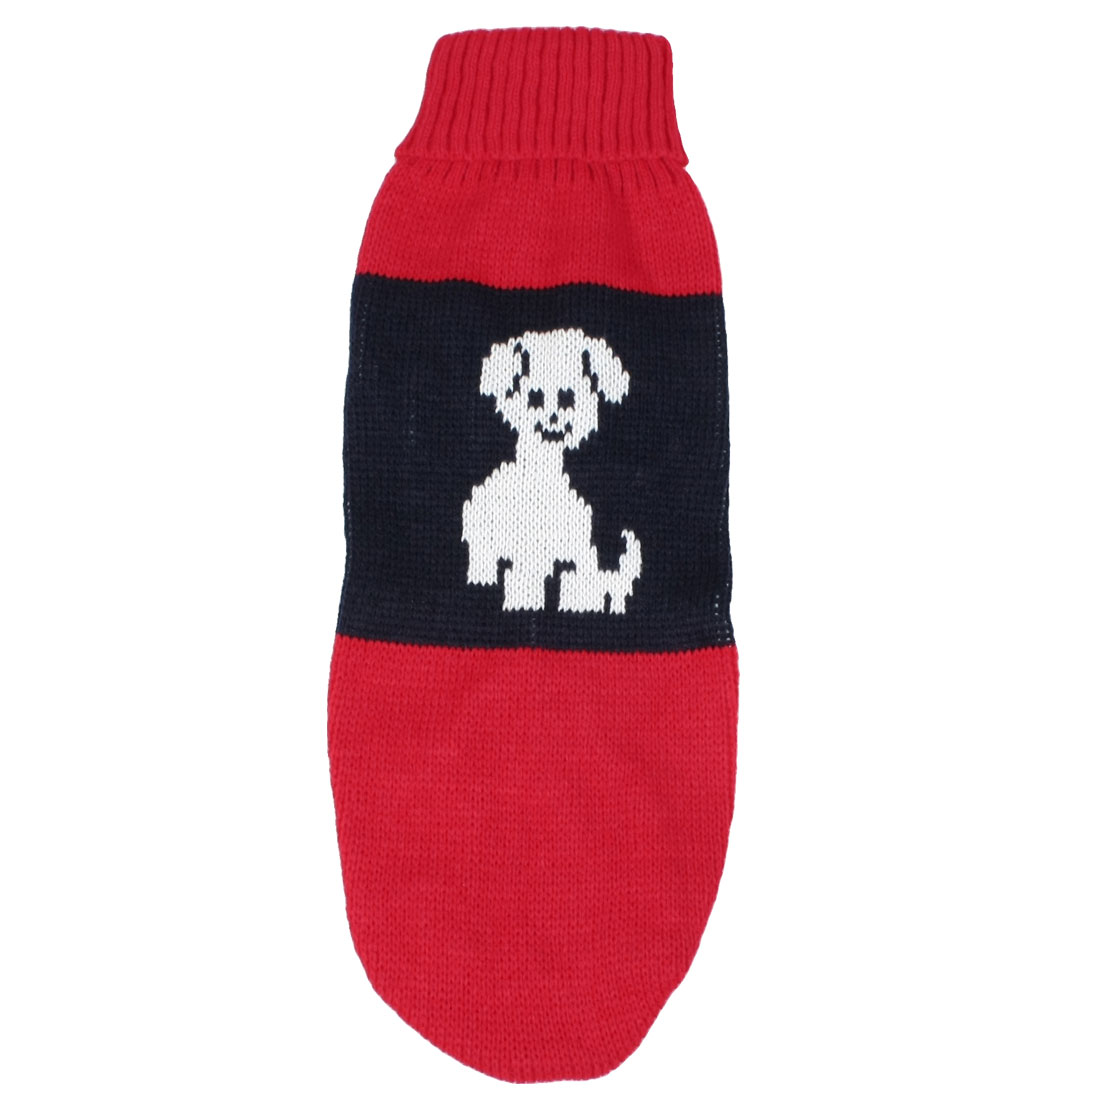 Pet Turtleneck Hand Knit Dog Sweater Clothing Coat Puppy Doggy Apparel Dark Blue